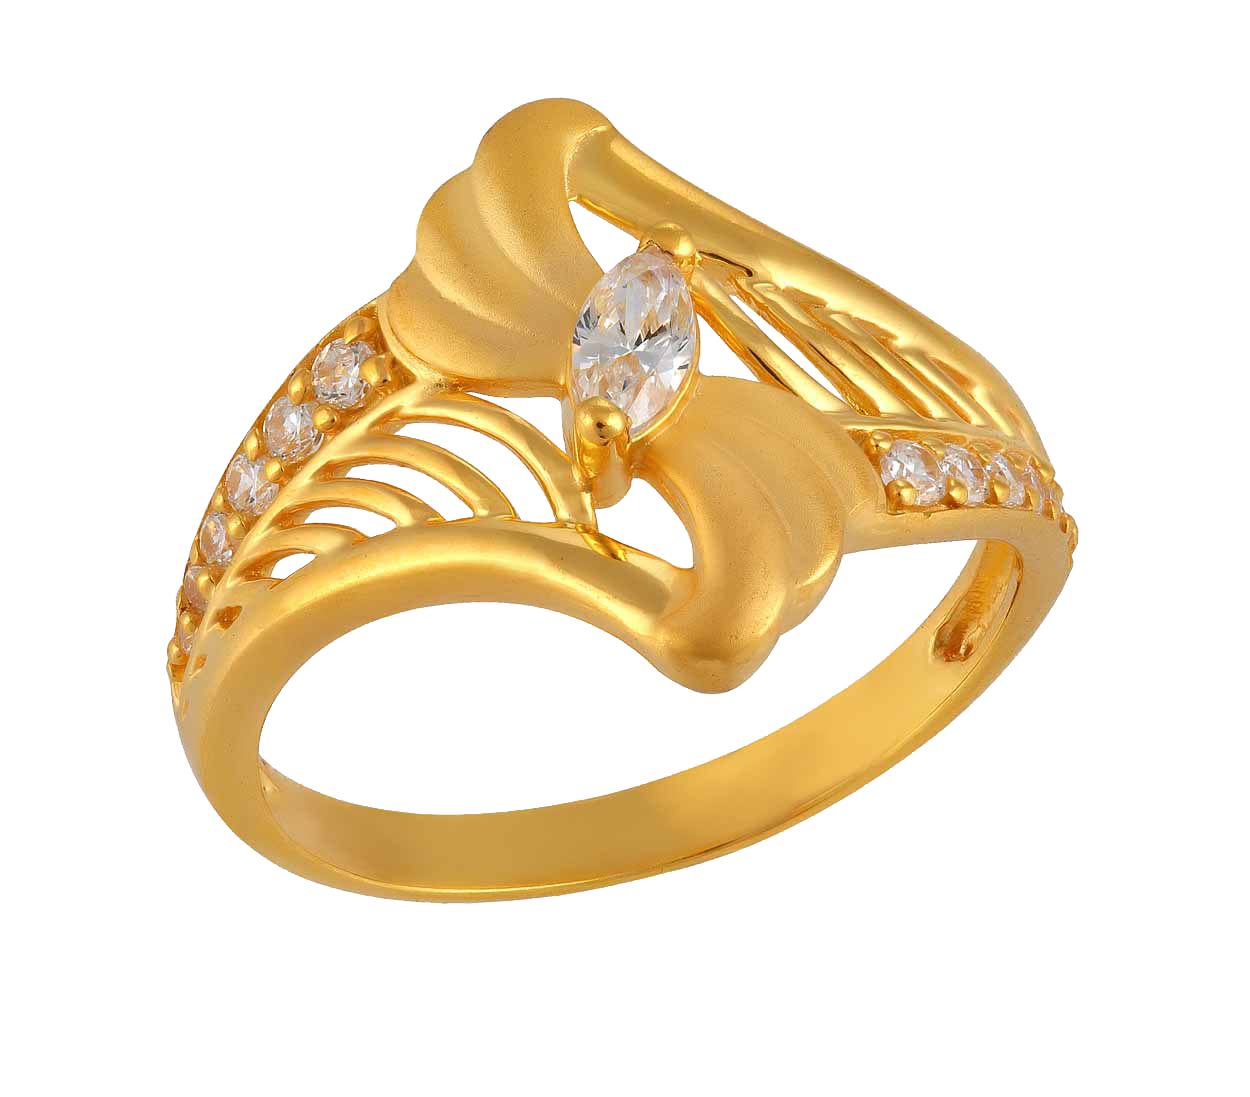 Gold Rings PNG Image